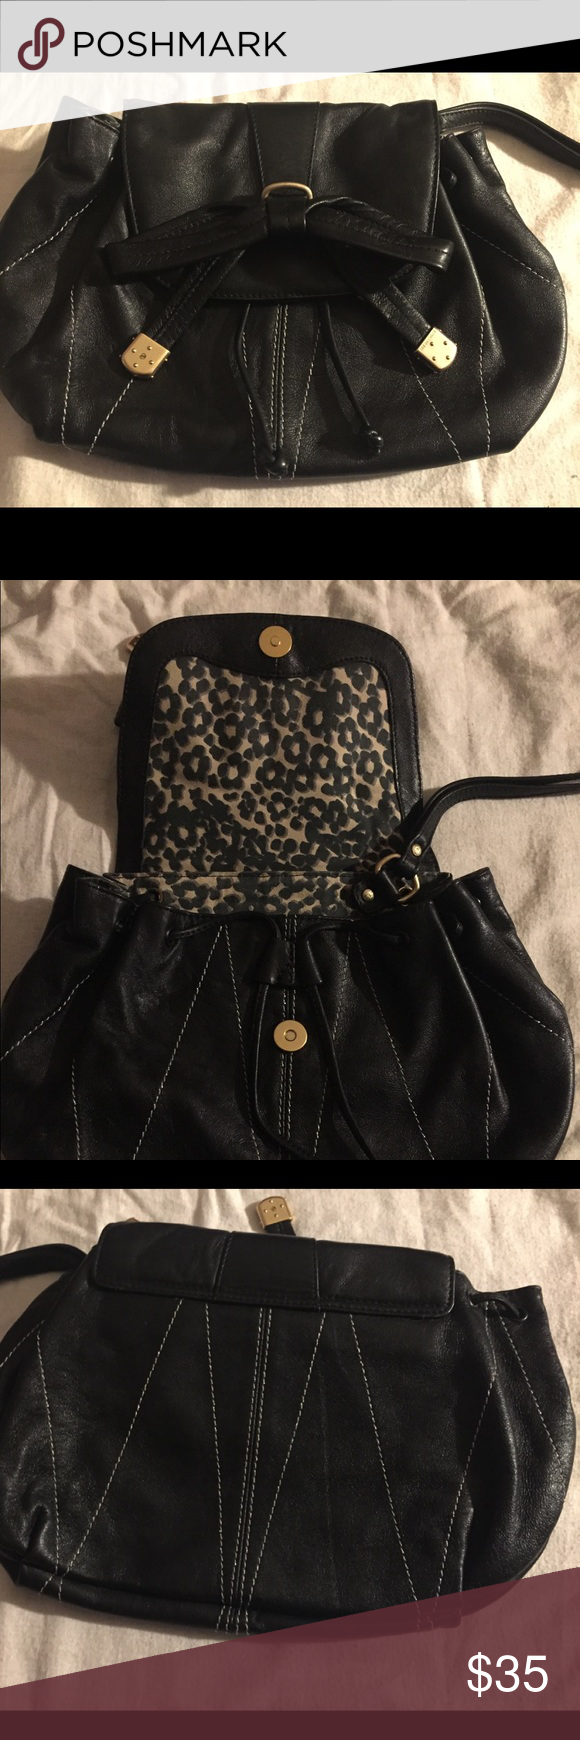 See By Chloe Linia Leather Clutch See By Chloe Leather Clutch/Wristlet. In good used condition.  Let me know if you have any questions!